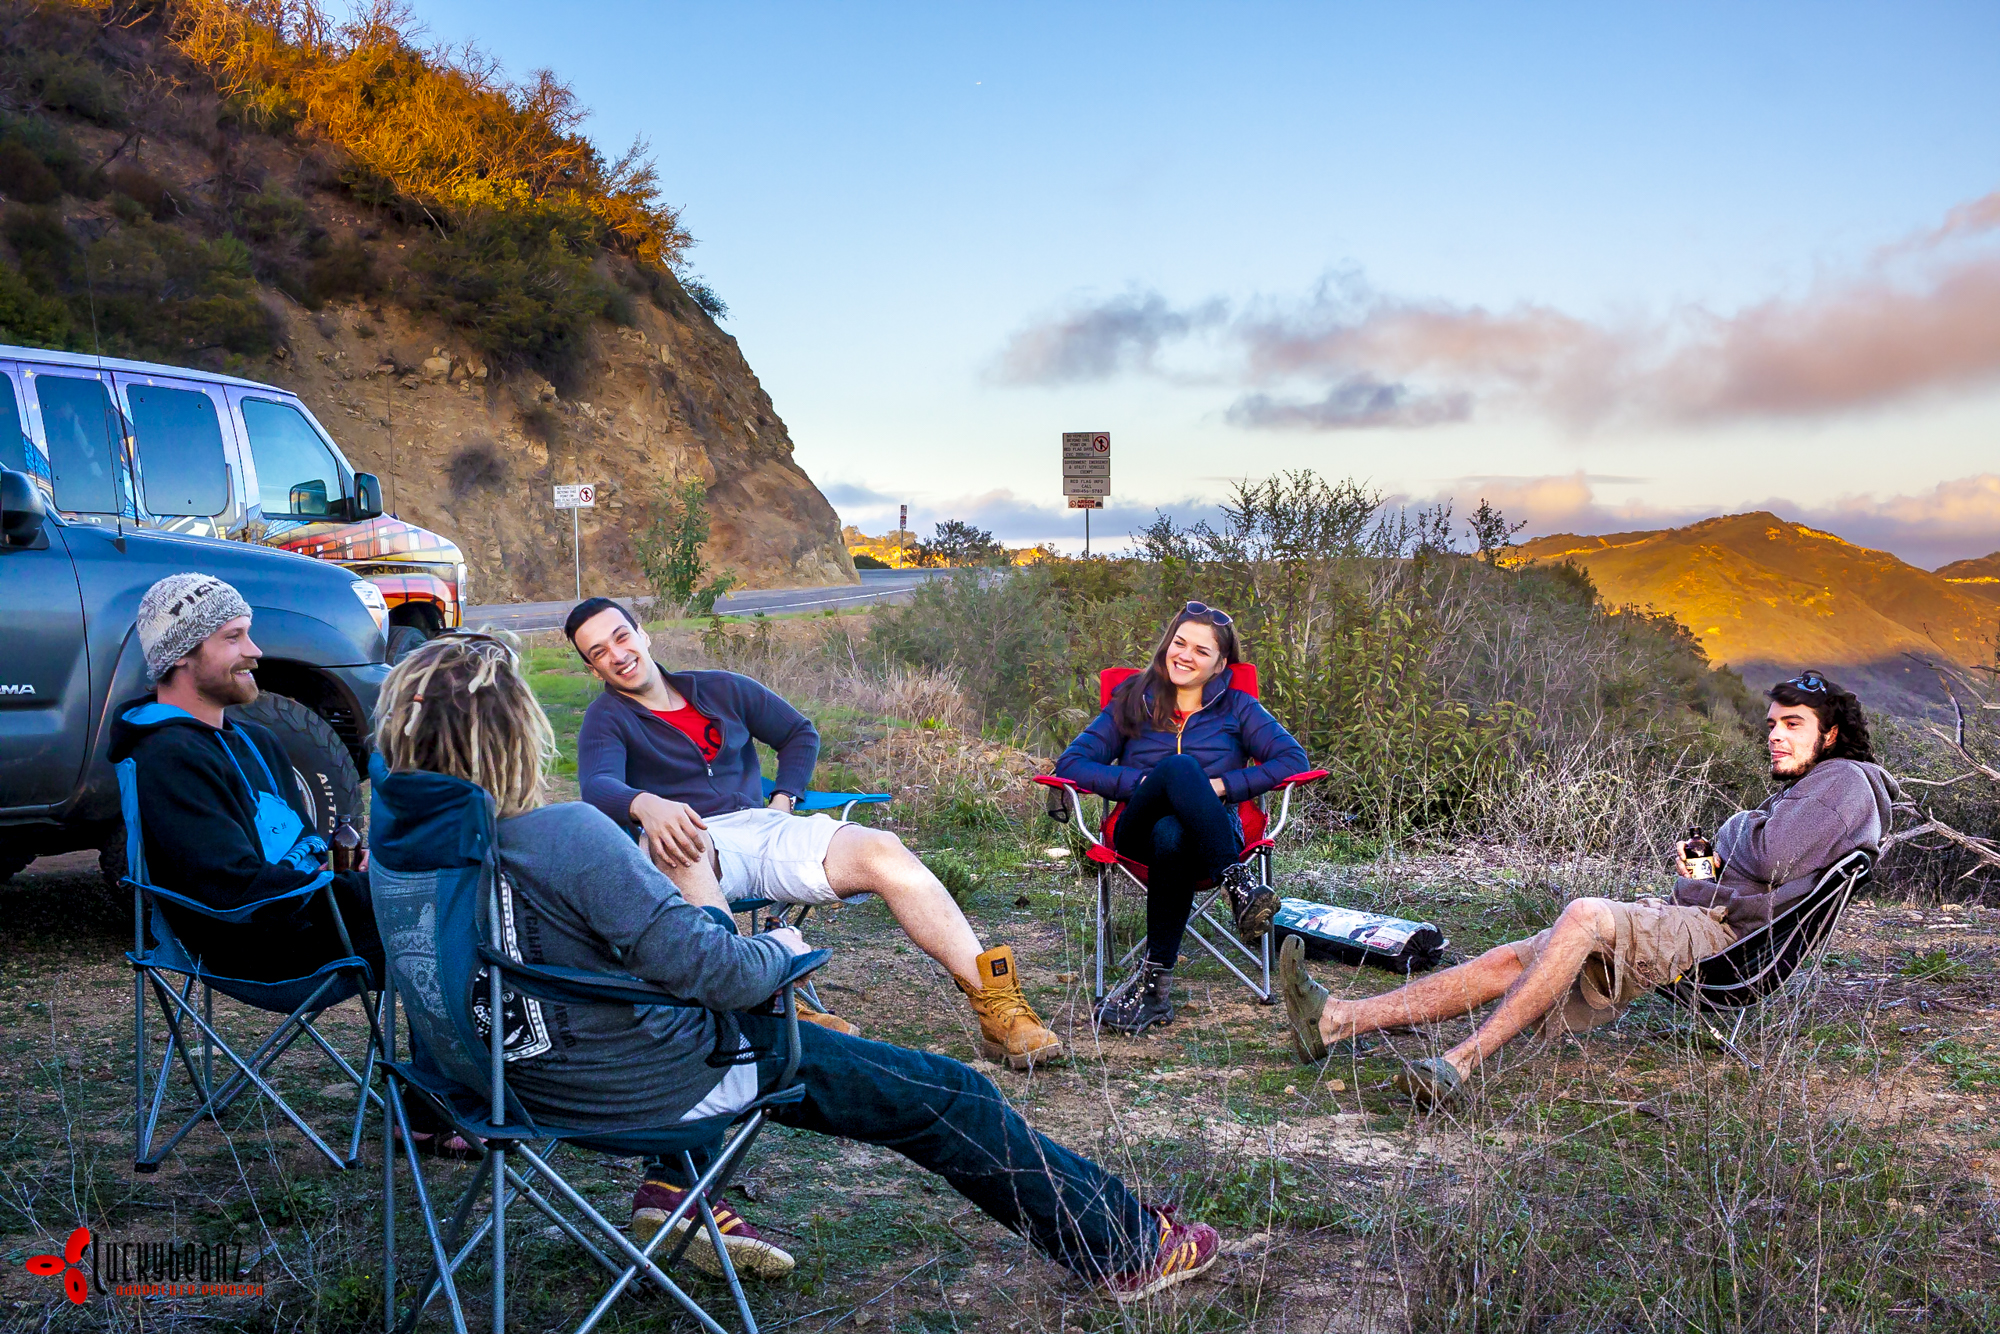 Camping in the Malibu Hills... We got moved on pretty quickly.